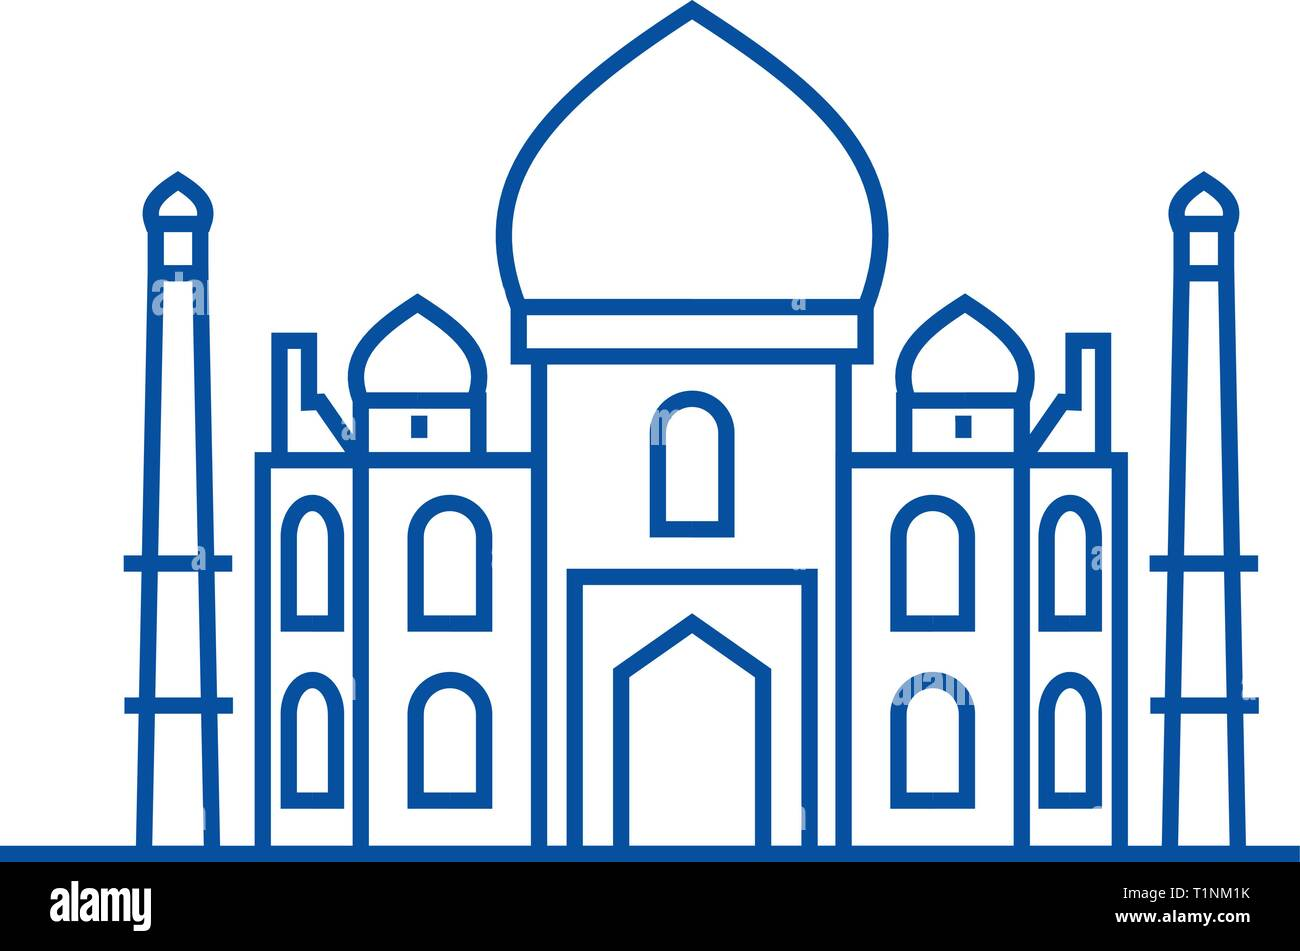 mosque islam line icon concept mosque islam flat vector symbol sign outline illustration stock vector image art alamy https www alamy com mosque islam line icon concept mosque islam flat vector symbol sign outline illustration image242036527 html